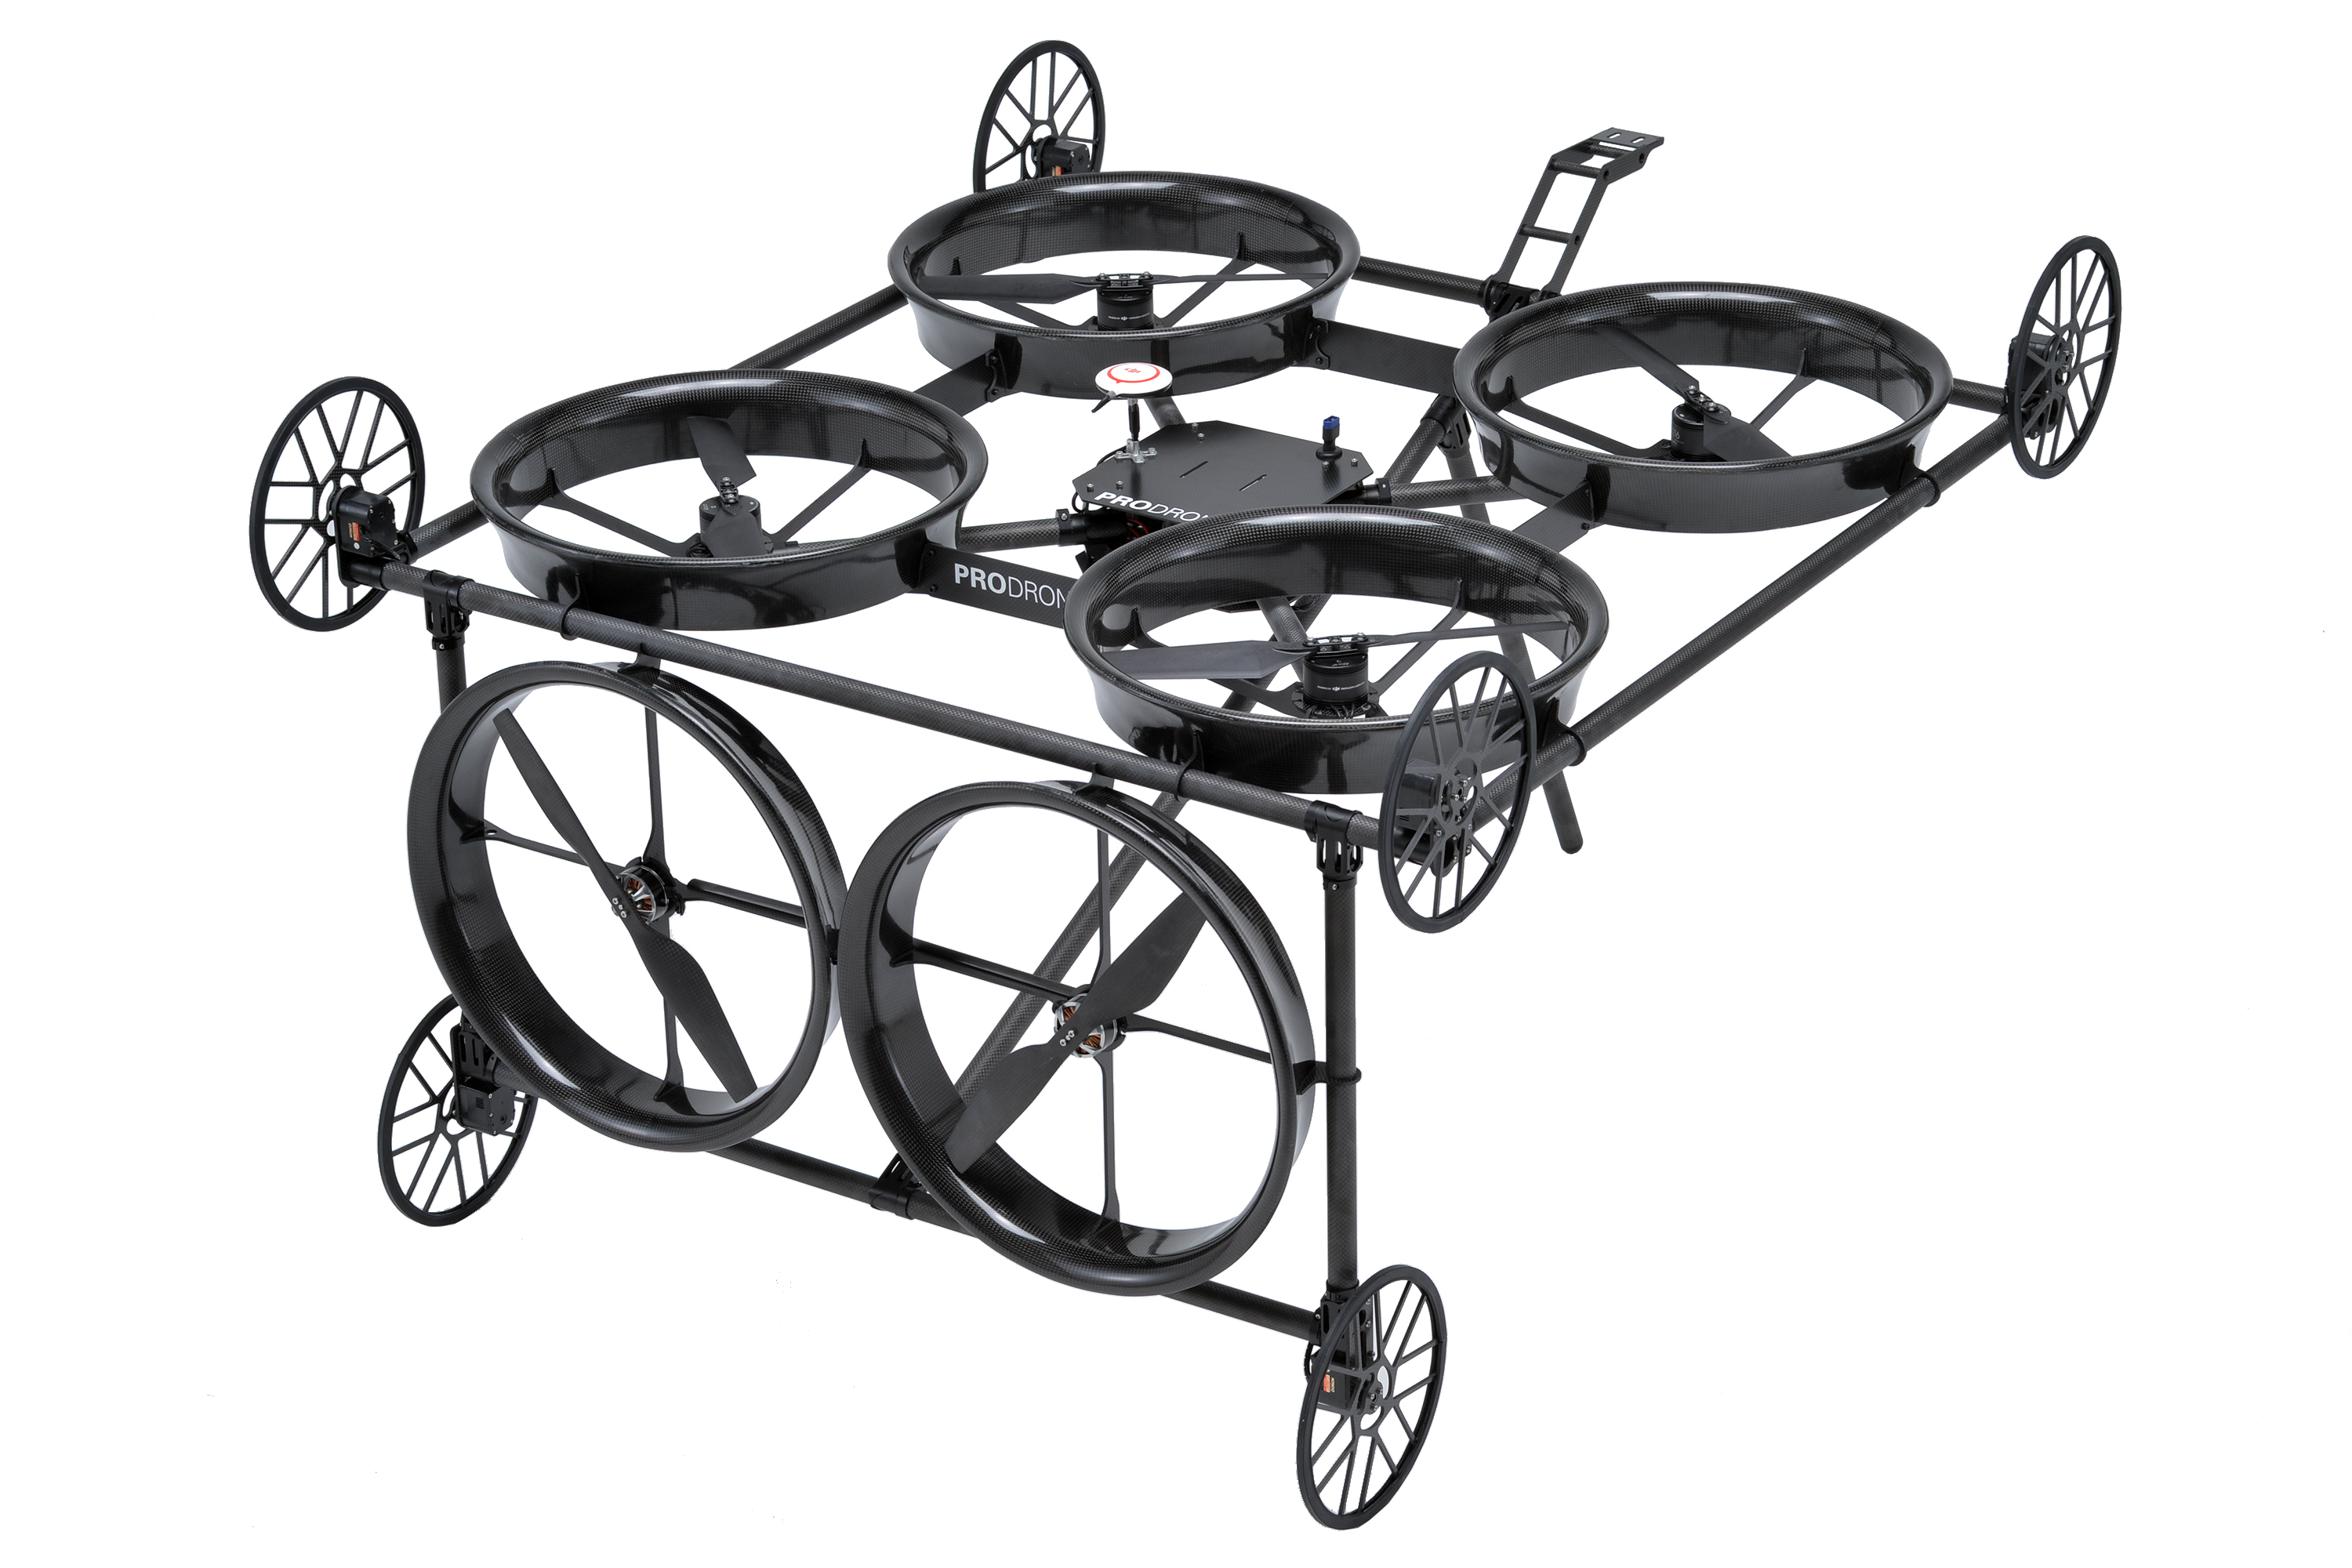 Interdrone Update Prodrone Announces Drones With Enhanced